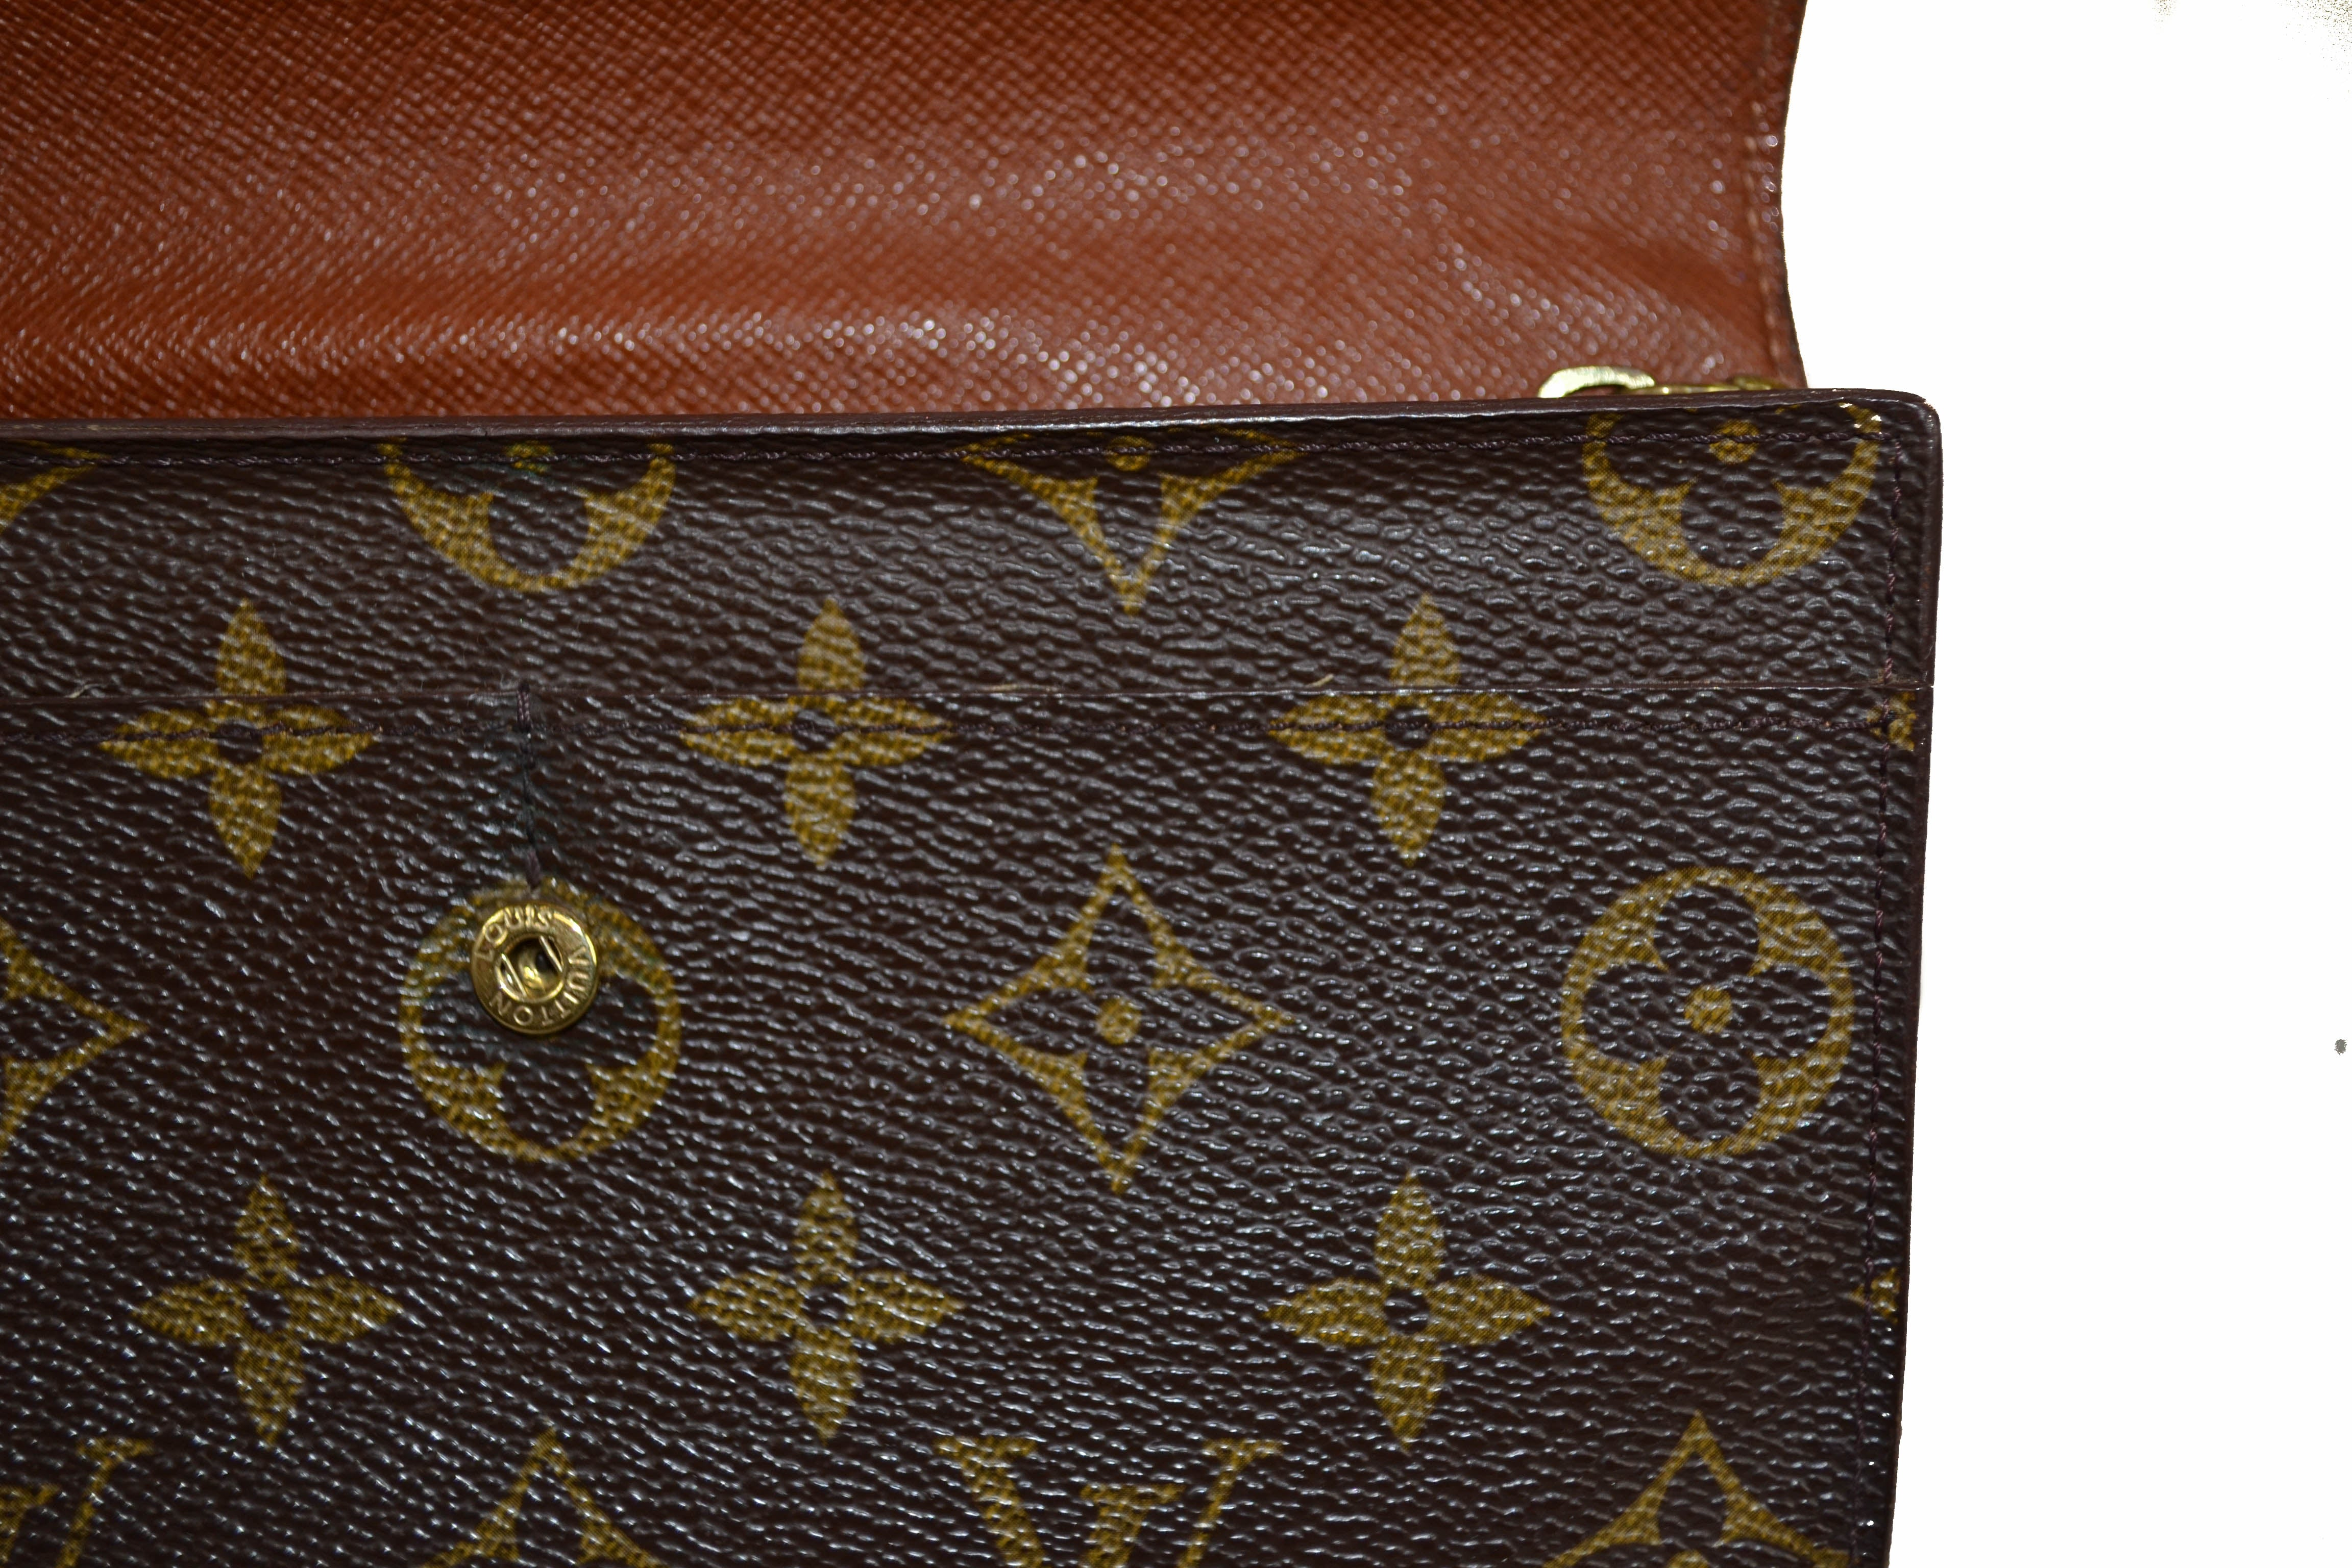 Authentic Louis Vuitton Monogram Canvas Sarah Wallet